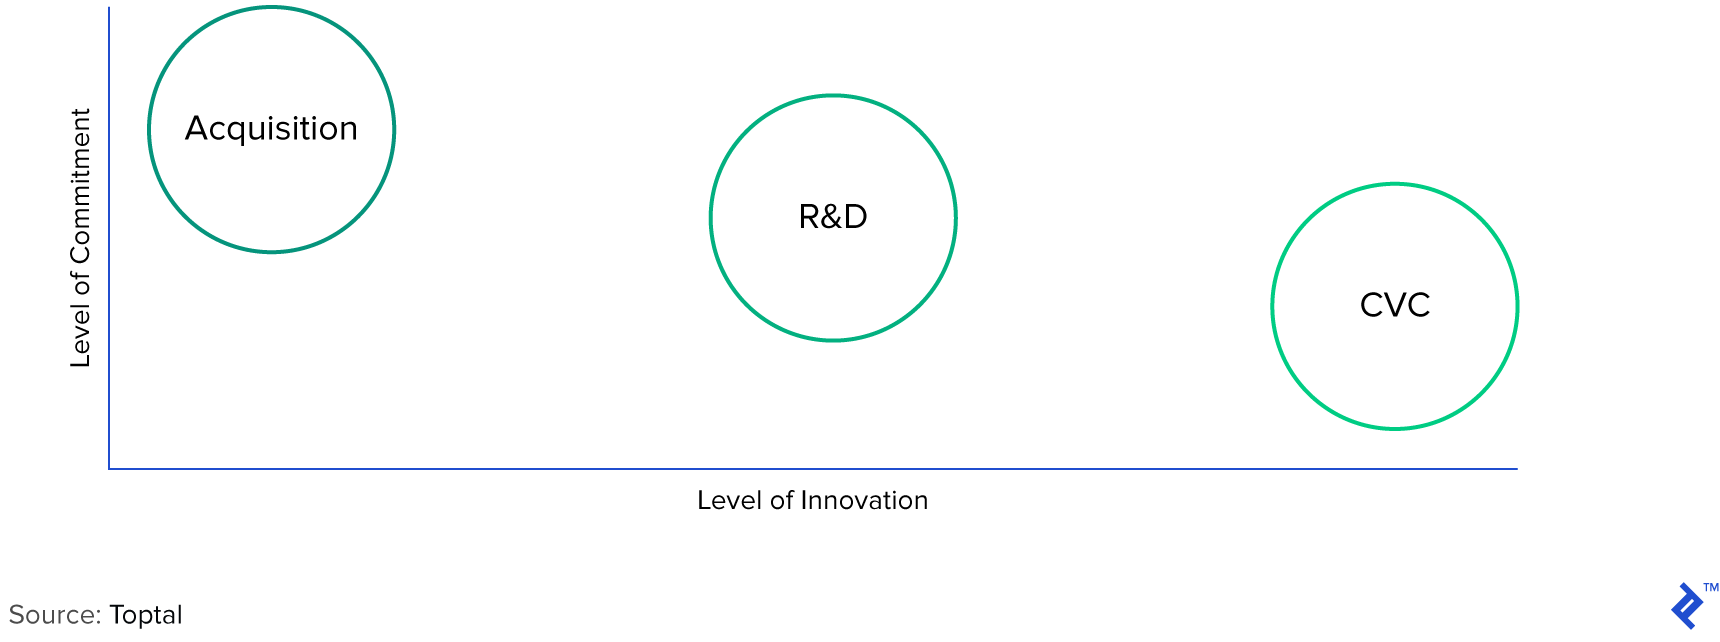 Level of Commitment vs. Level of Innovation: Acquisition, R&D, and Corporate VC (First Interaction)